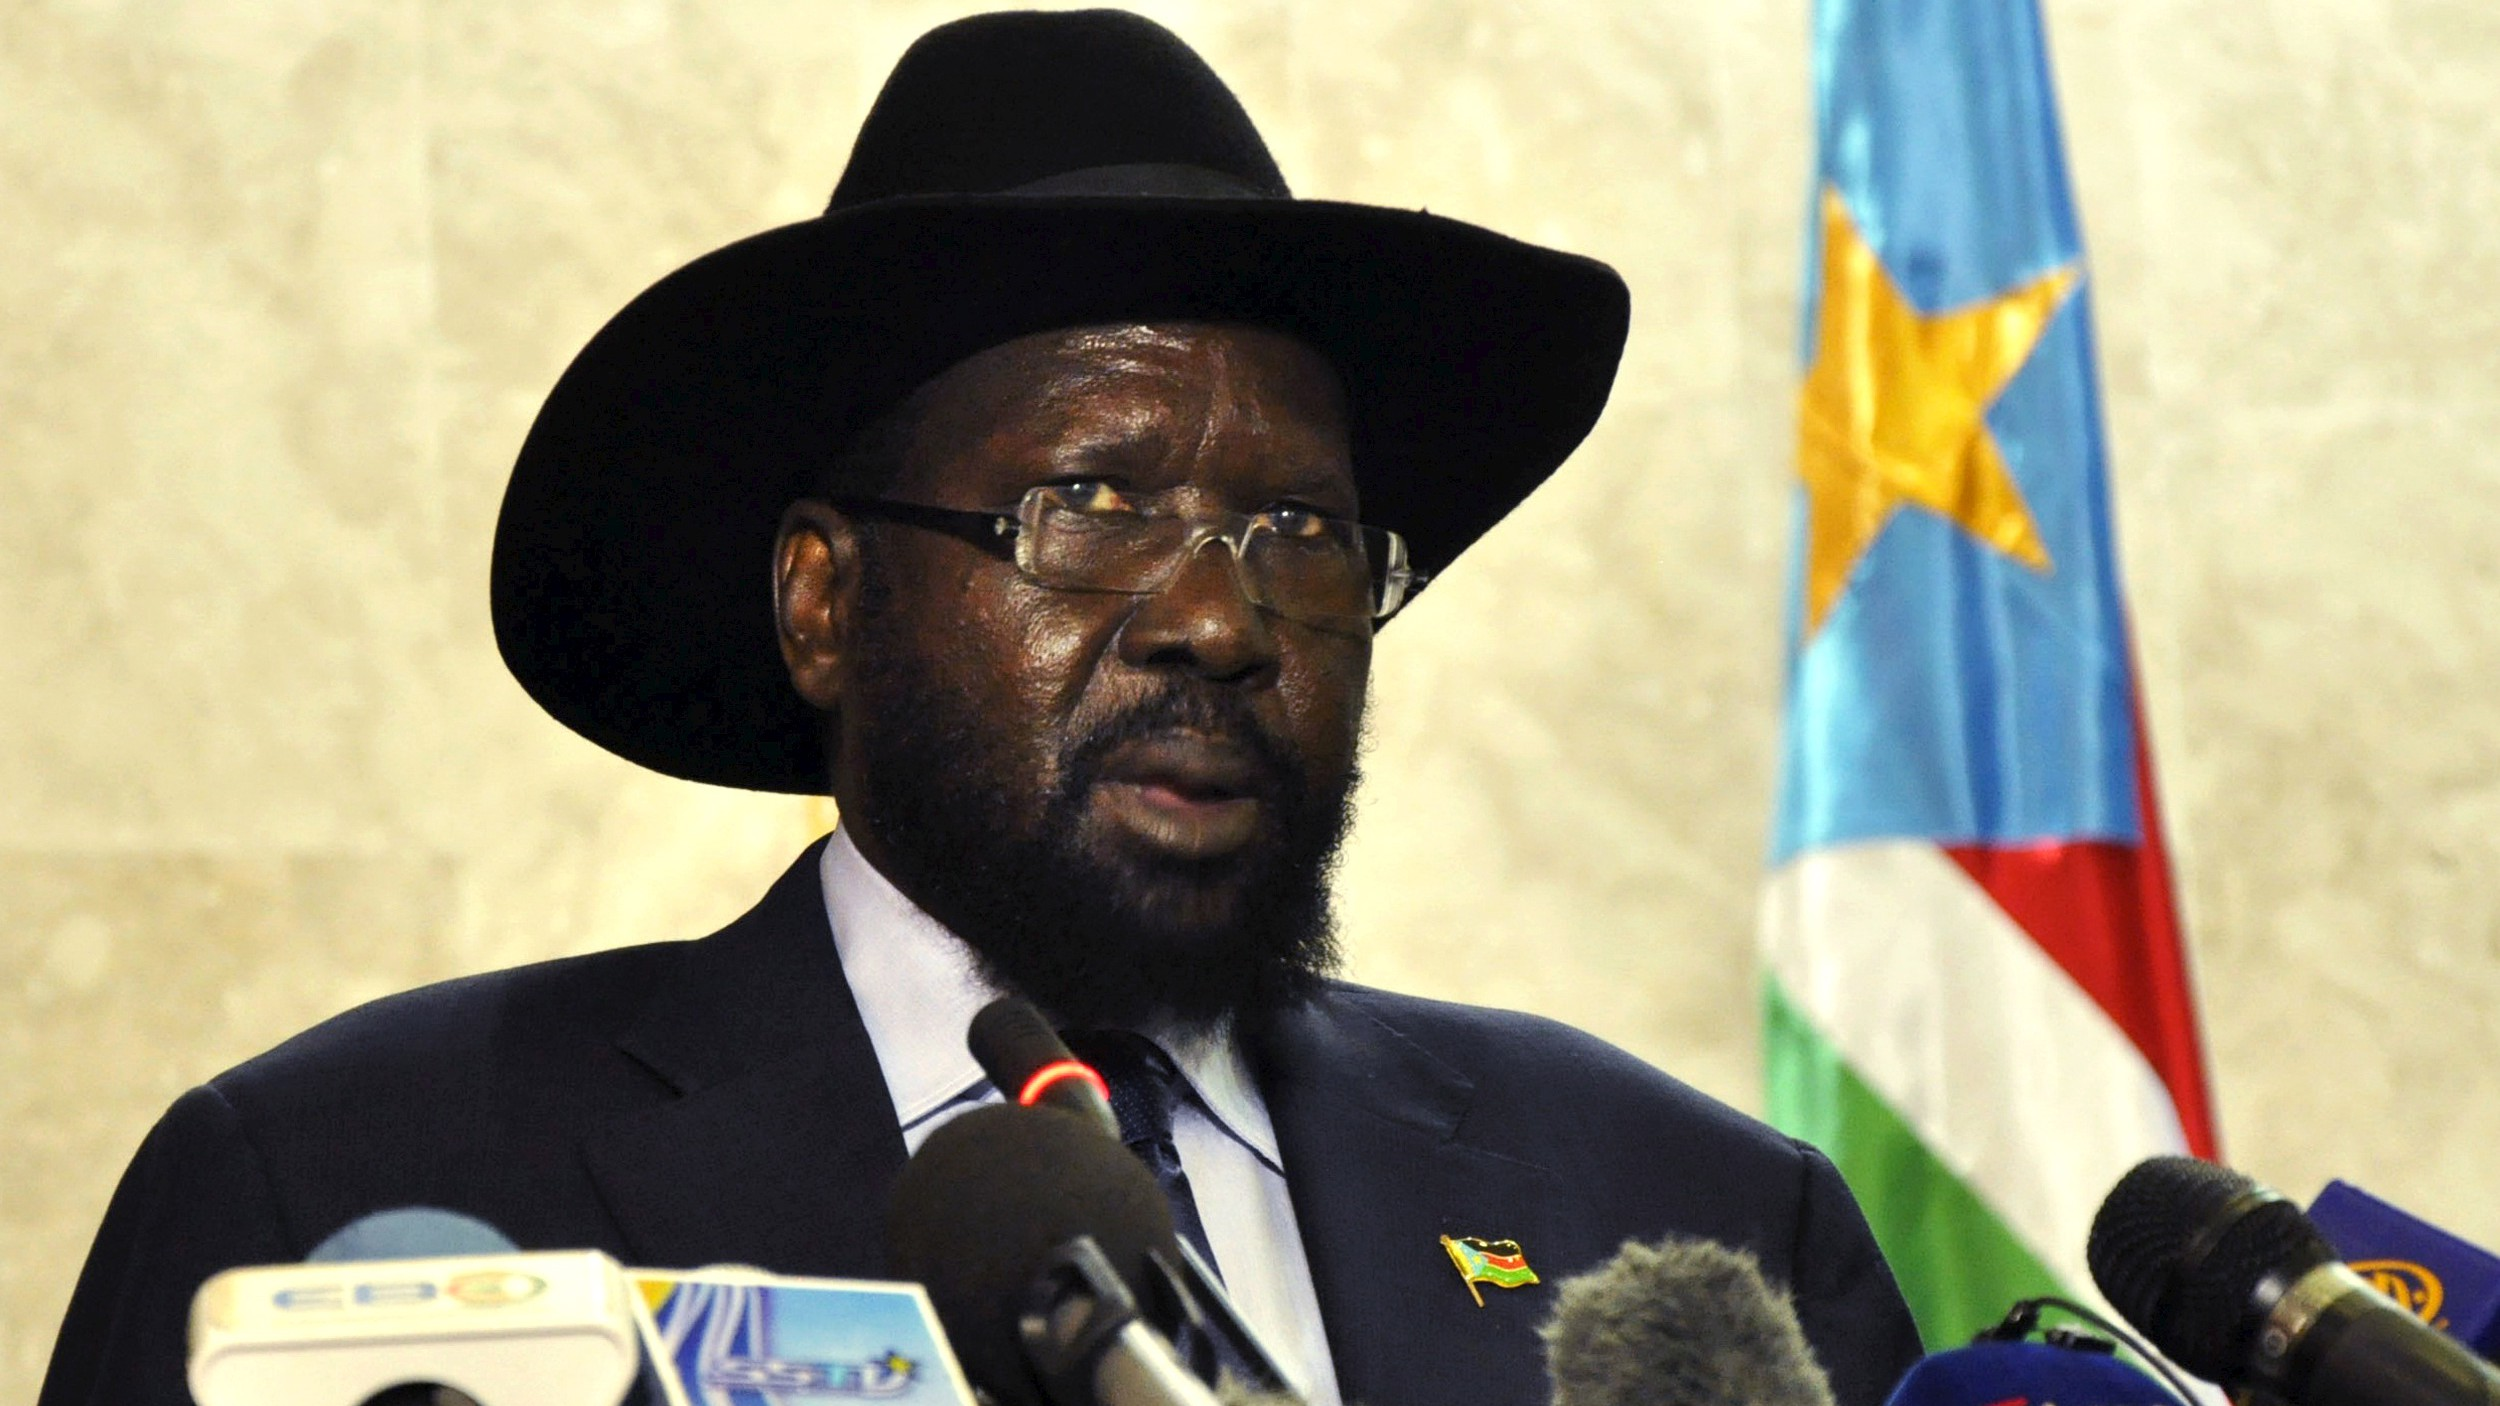 South Sudan's President Kiir addresses the nation at the South Sudan National Parliament in Juba